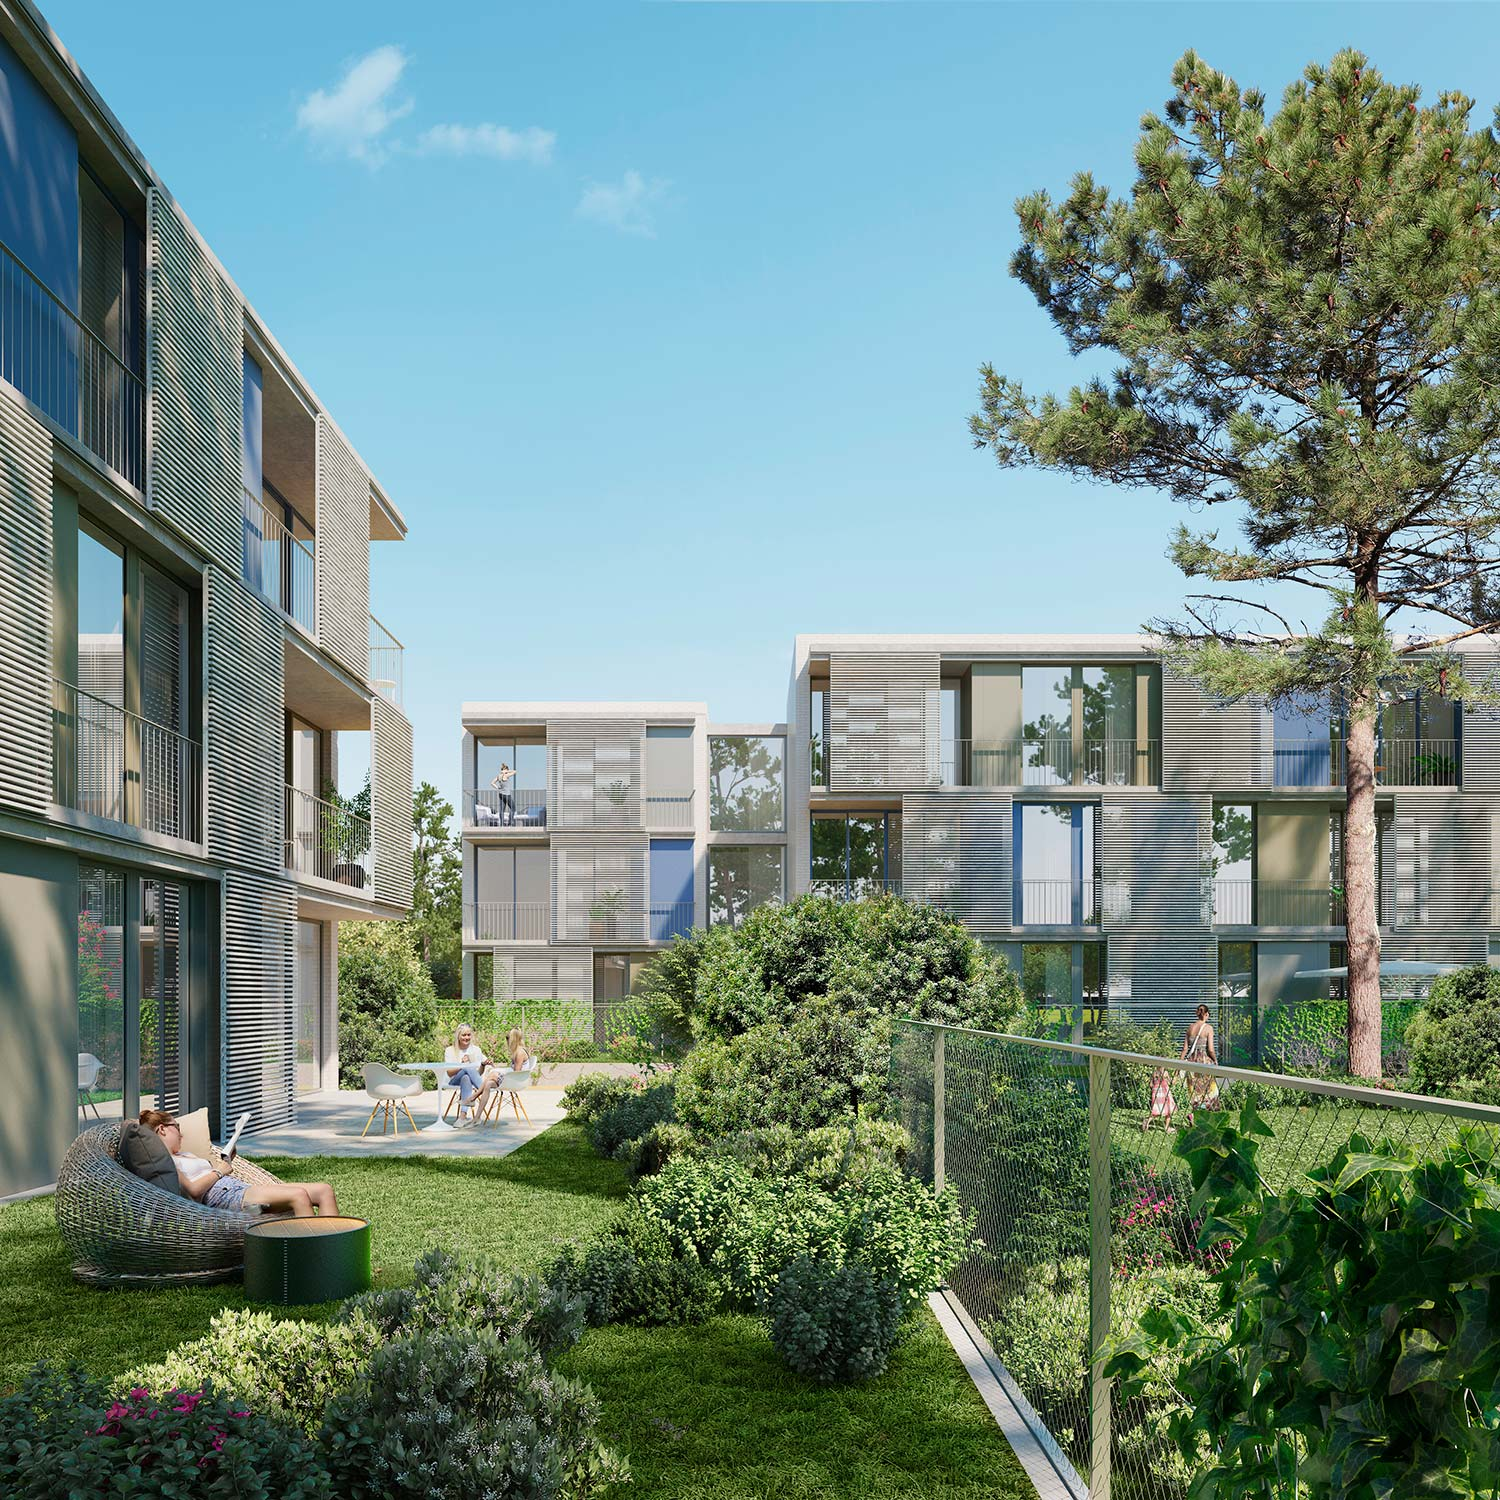 architectural rendering residential building in Platja d'Aro